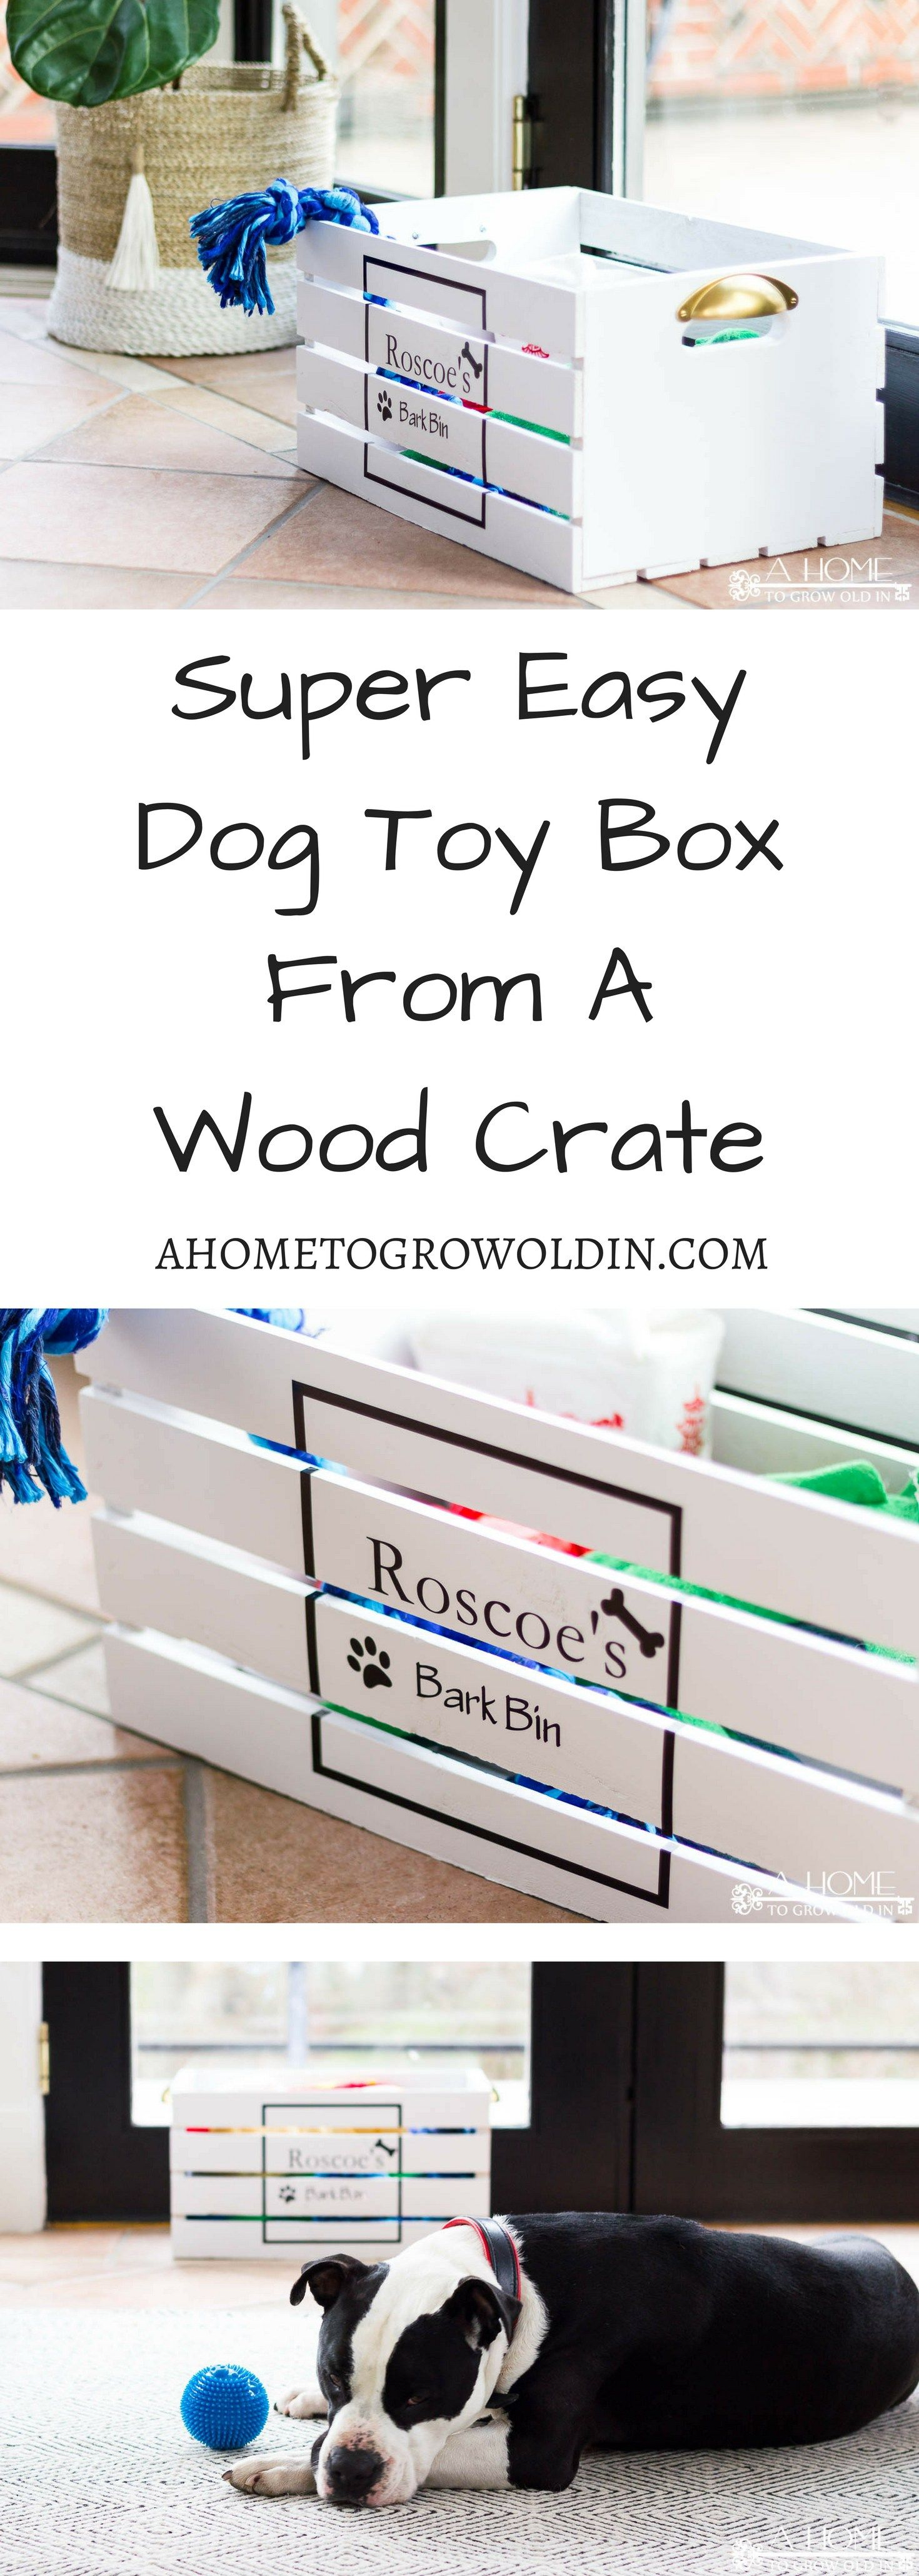 How To Make An Easy DIY Wooden Dog Toy Box Dog toy